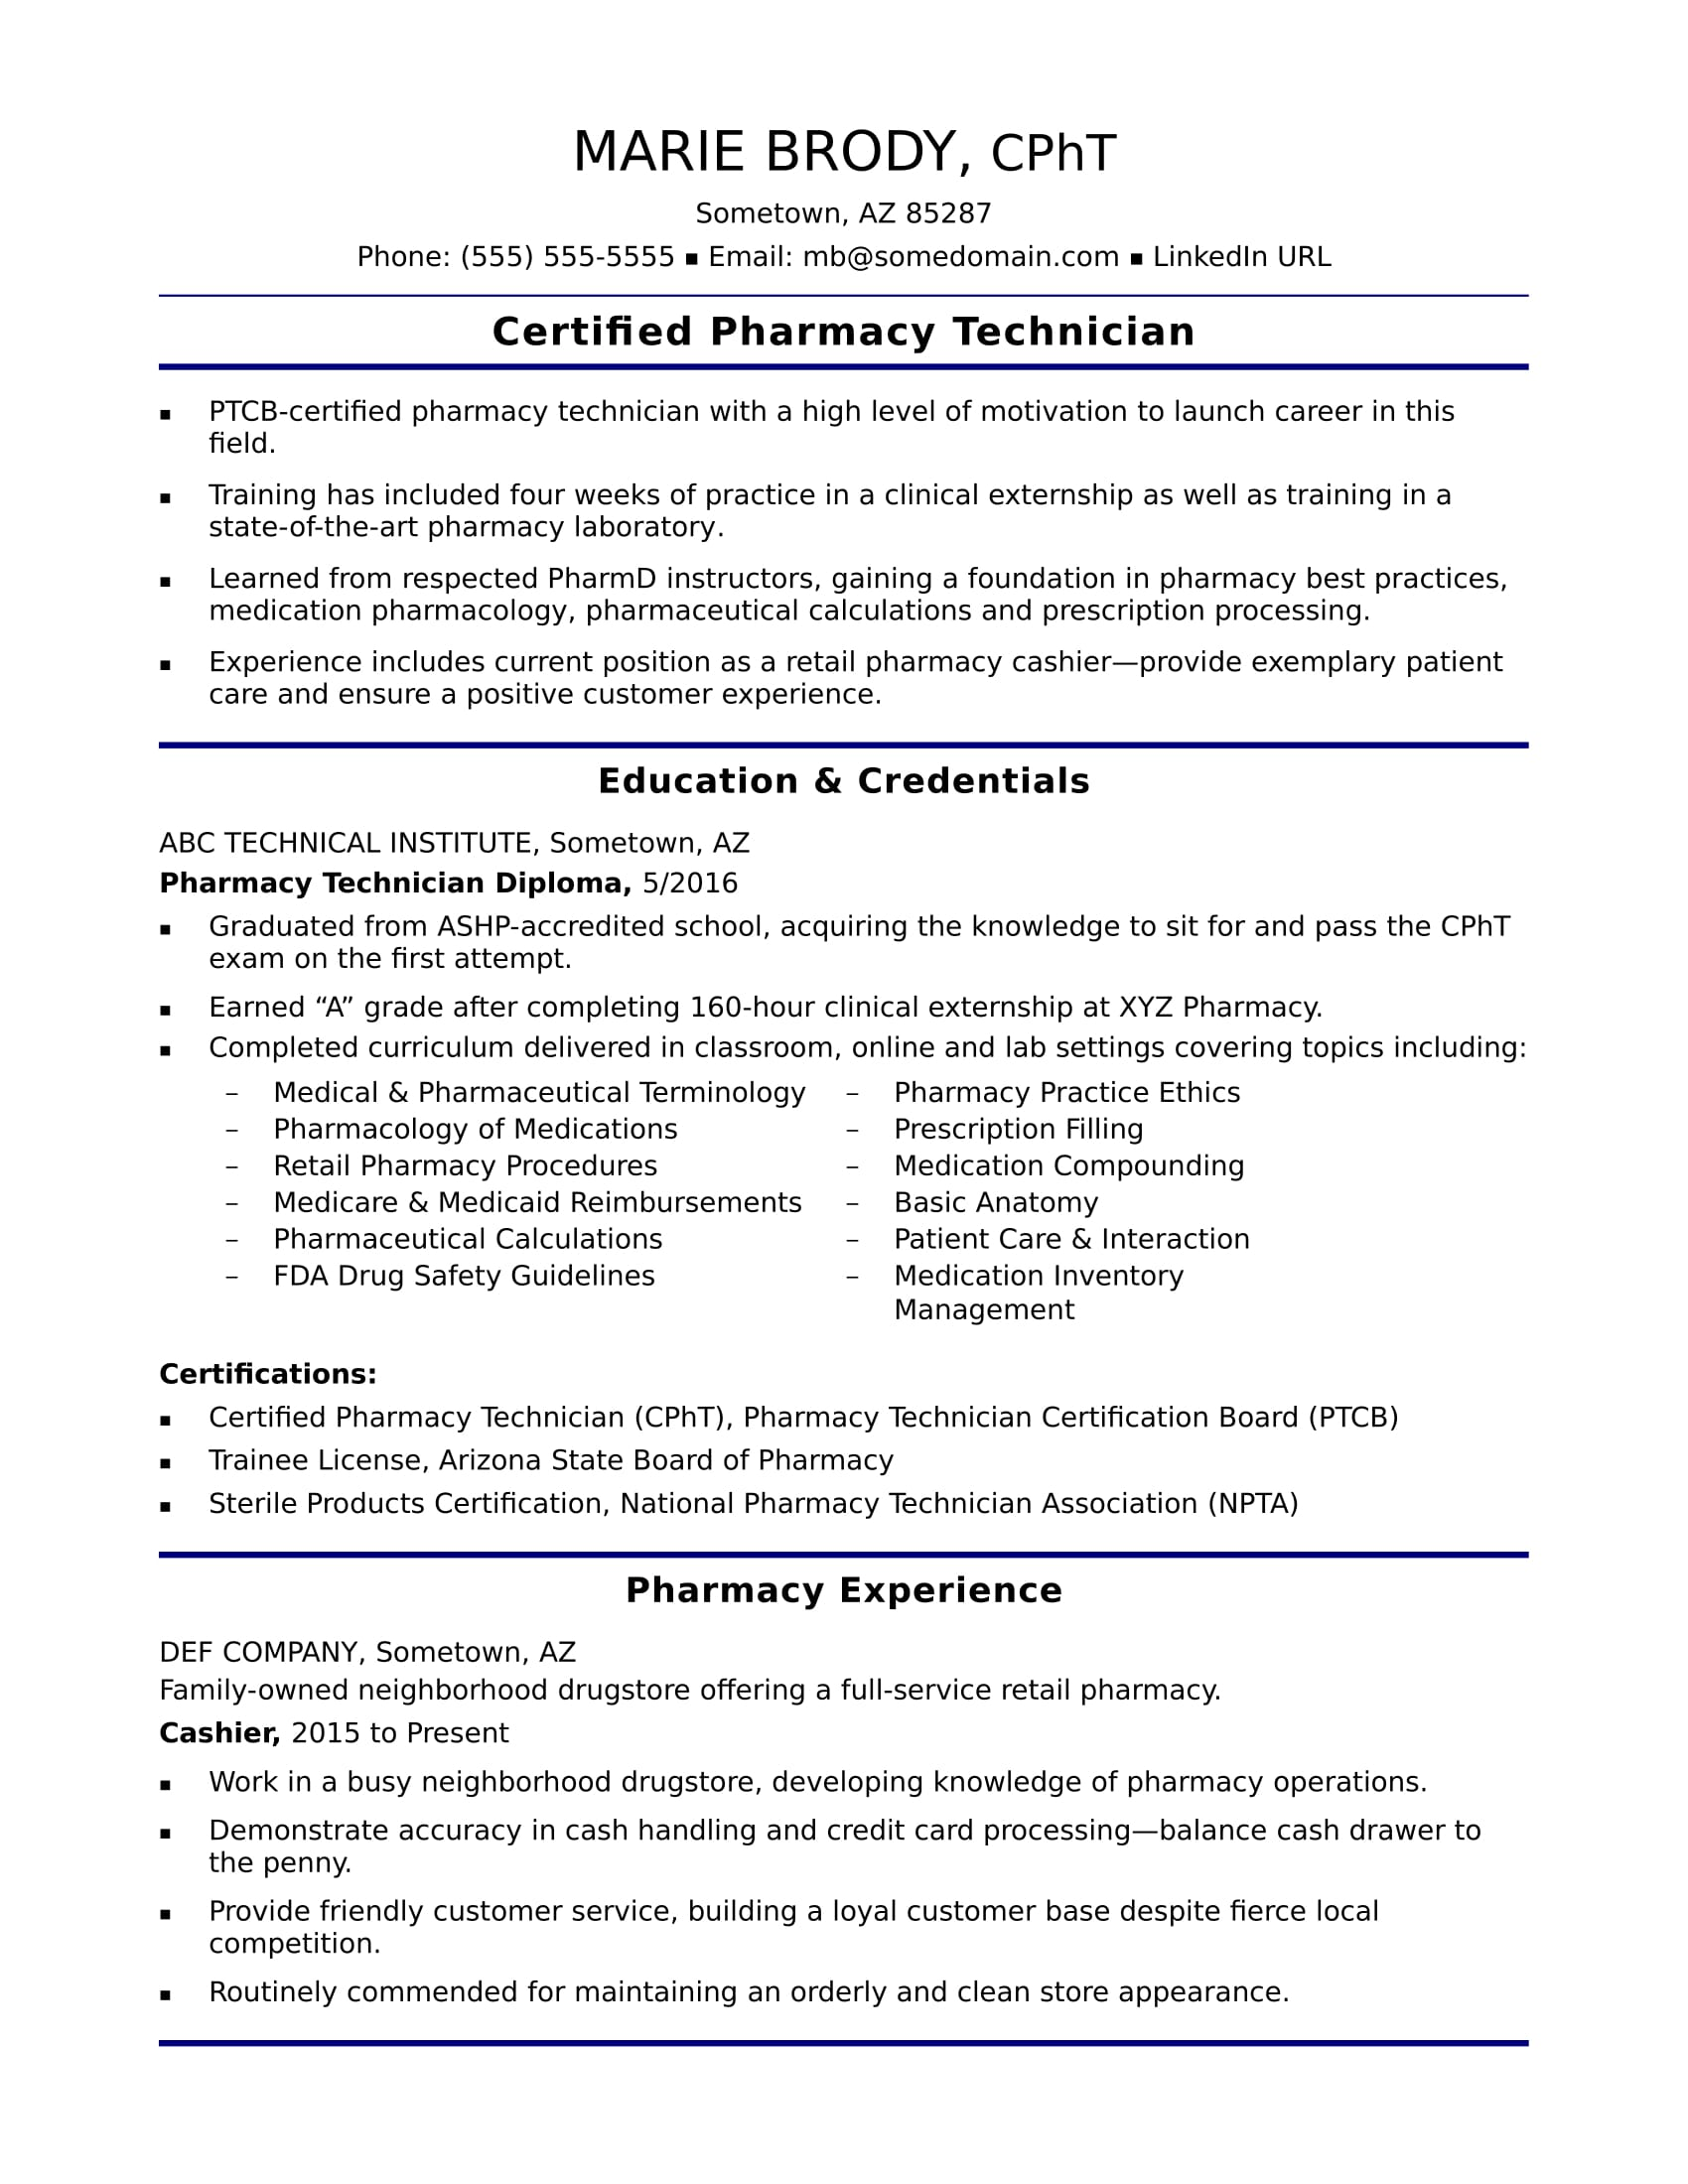 Sample Resume for an Entry-Level Pharmacy Technician